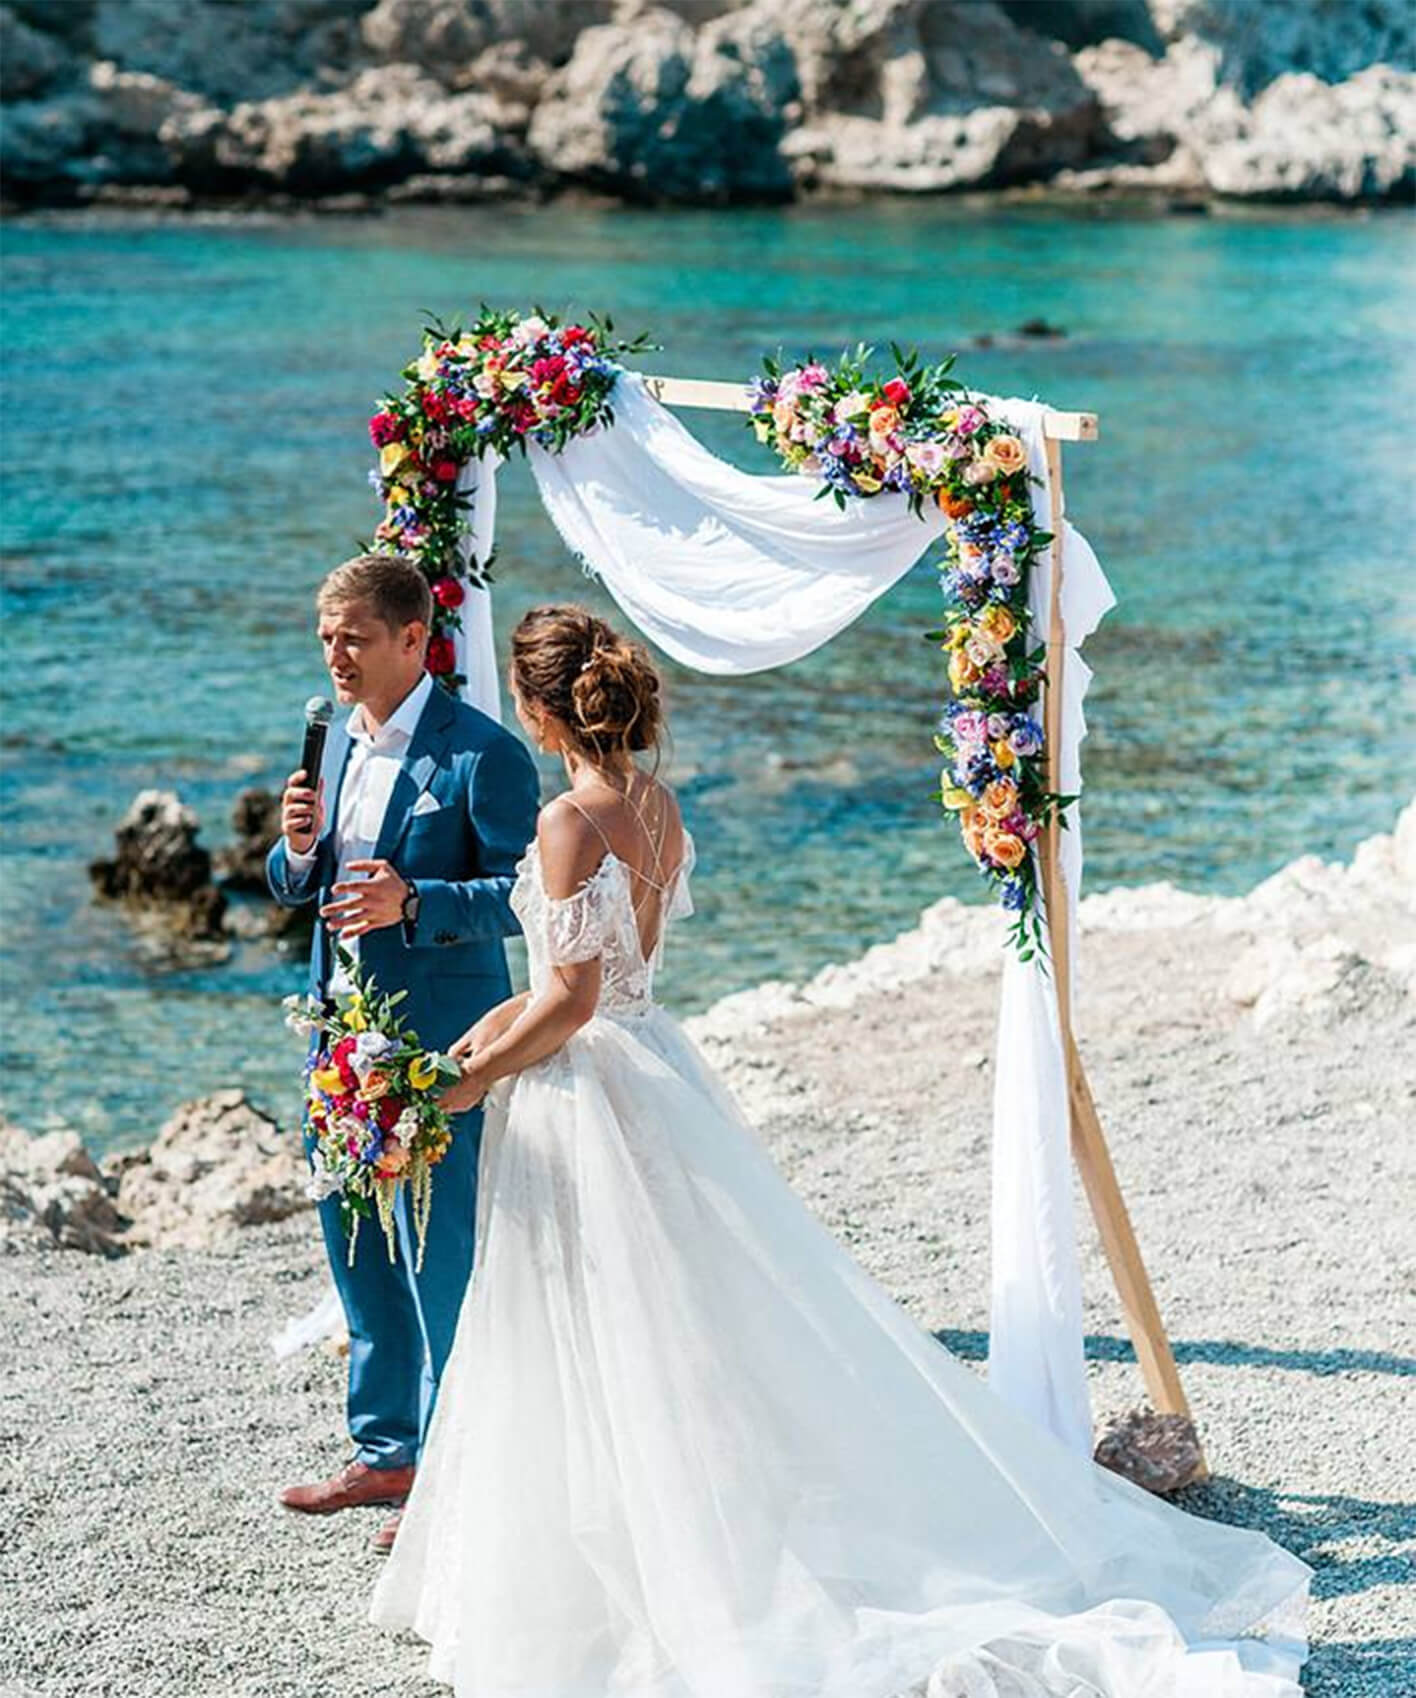 Destination wedding in Greece by the sea with colourful details and a flower wedding arch